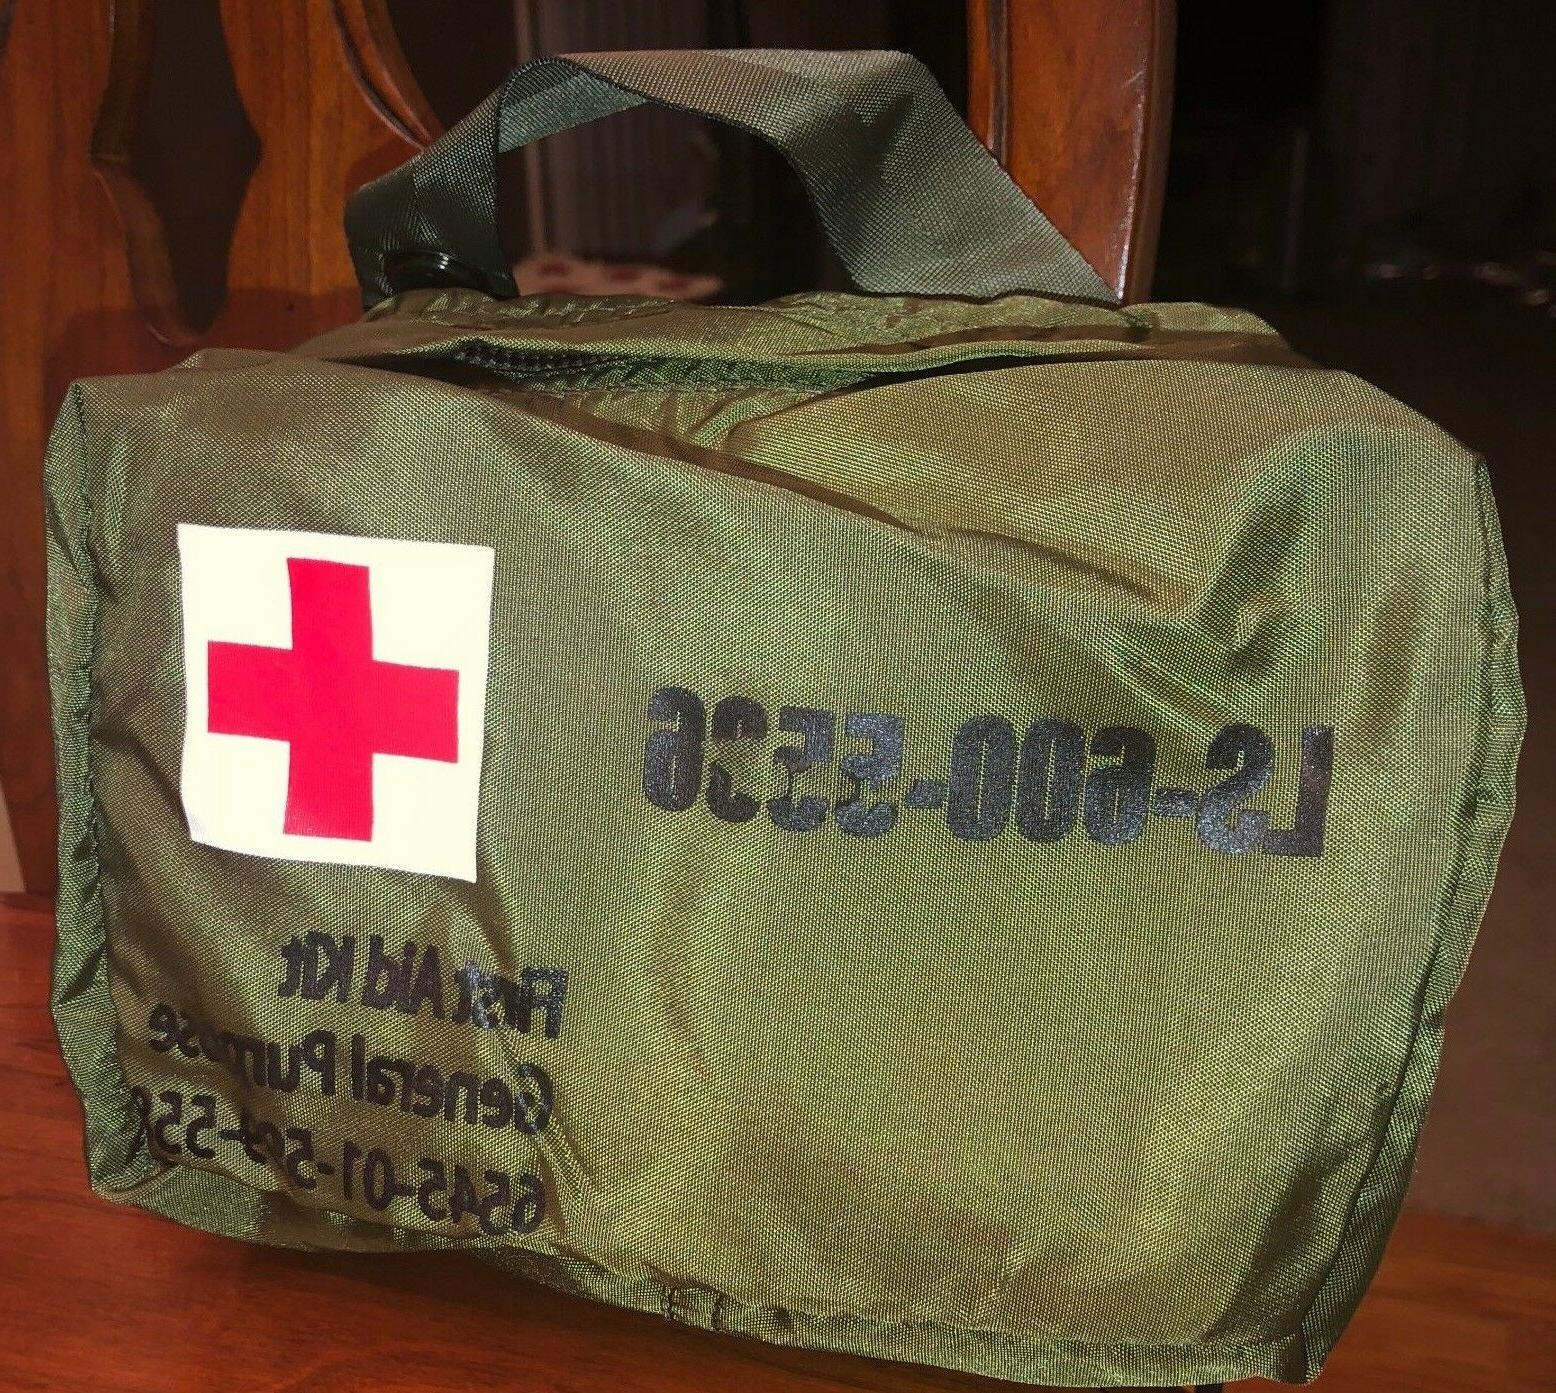 Travel/Hunting Aid Emergency for Survival Supplies